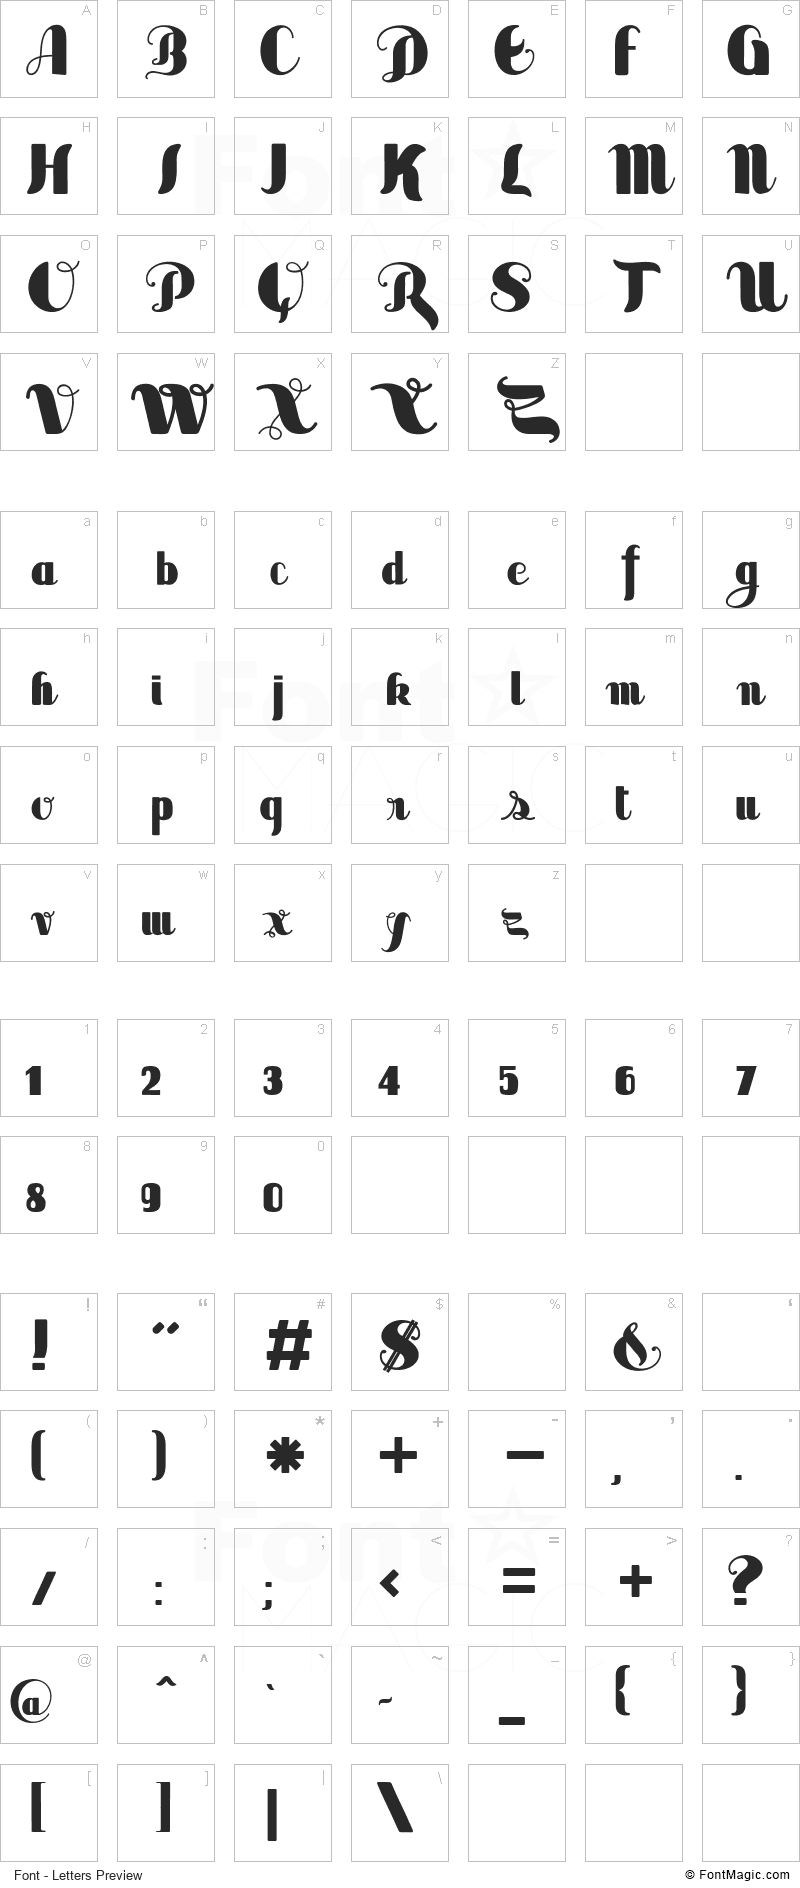 Sabor Font - All Latters Preview Chart